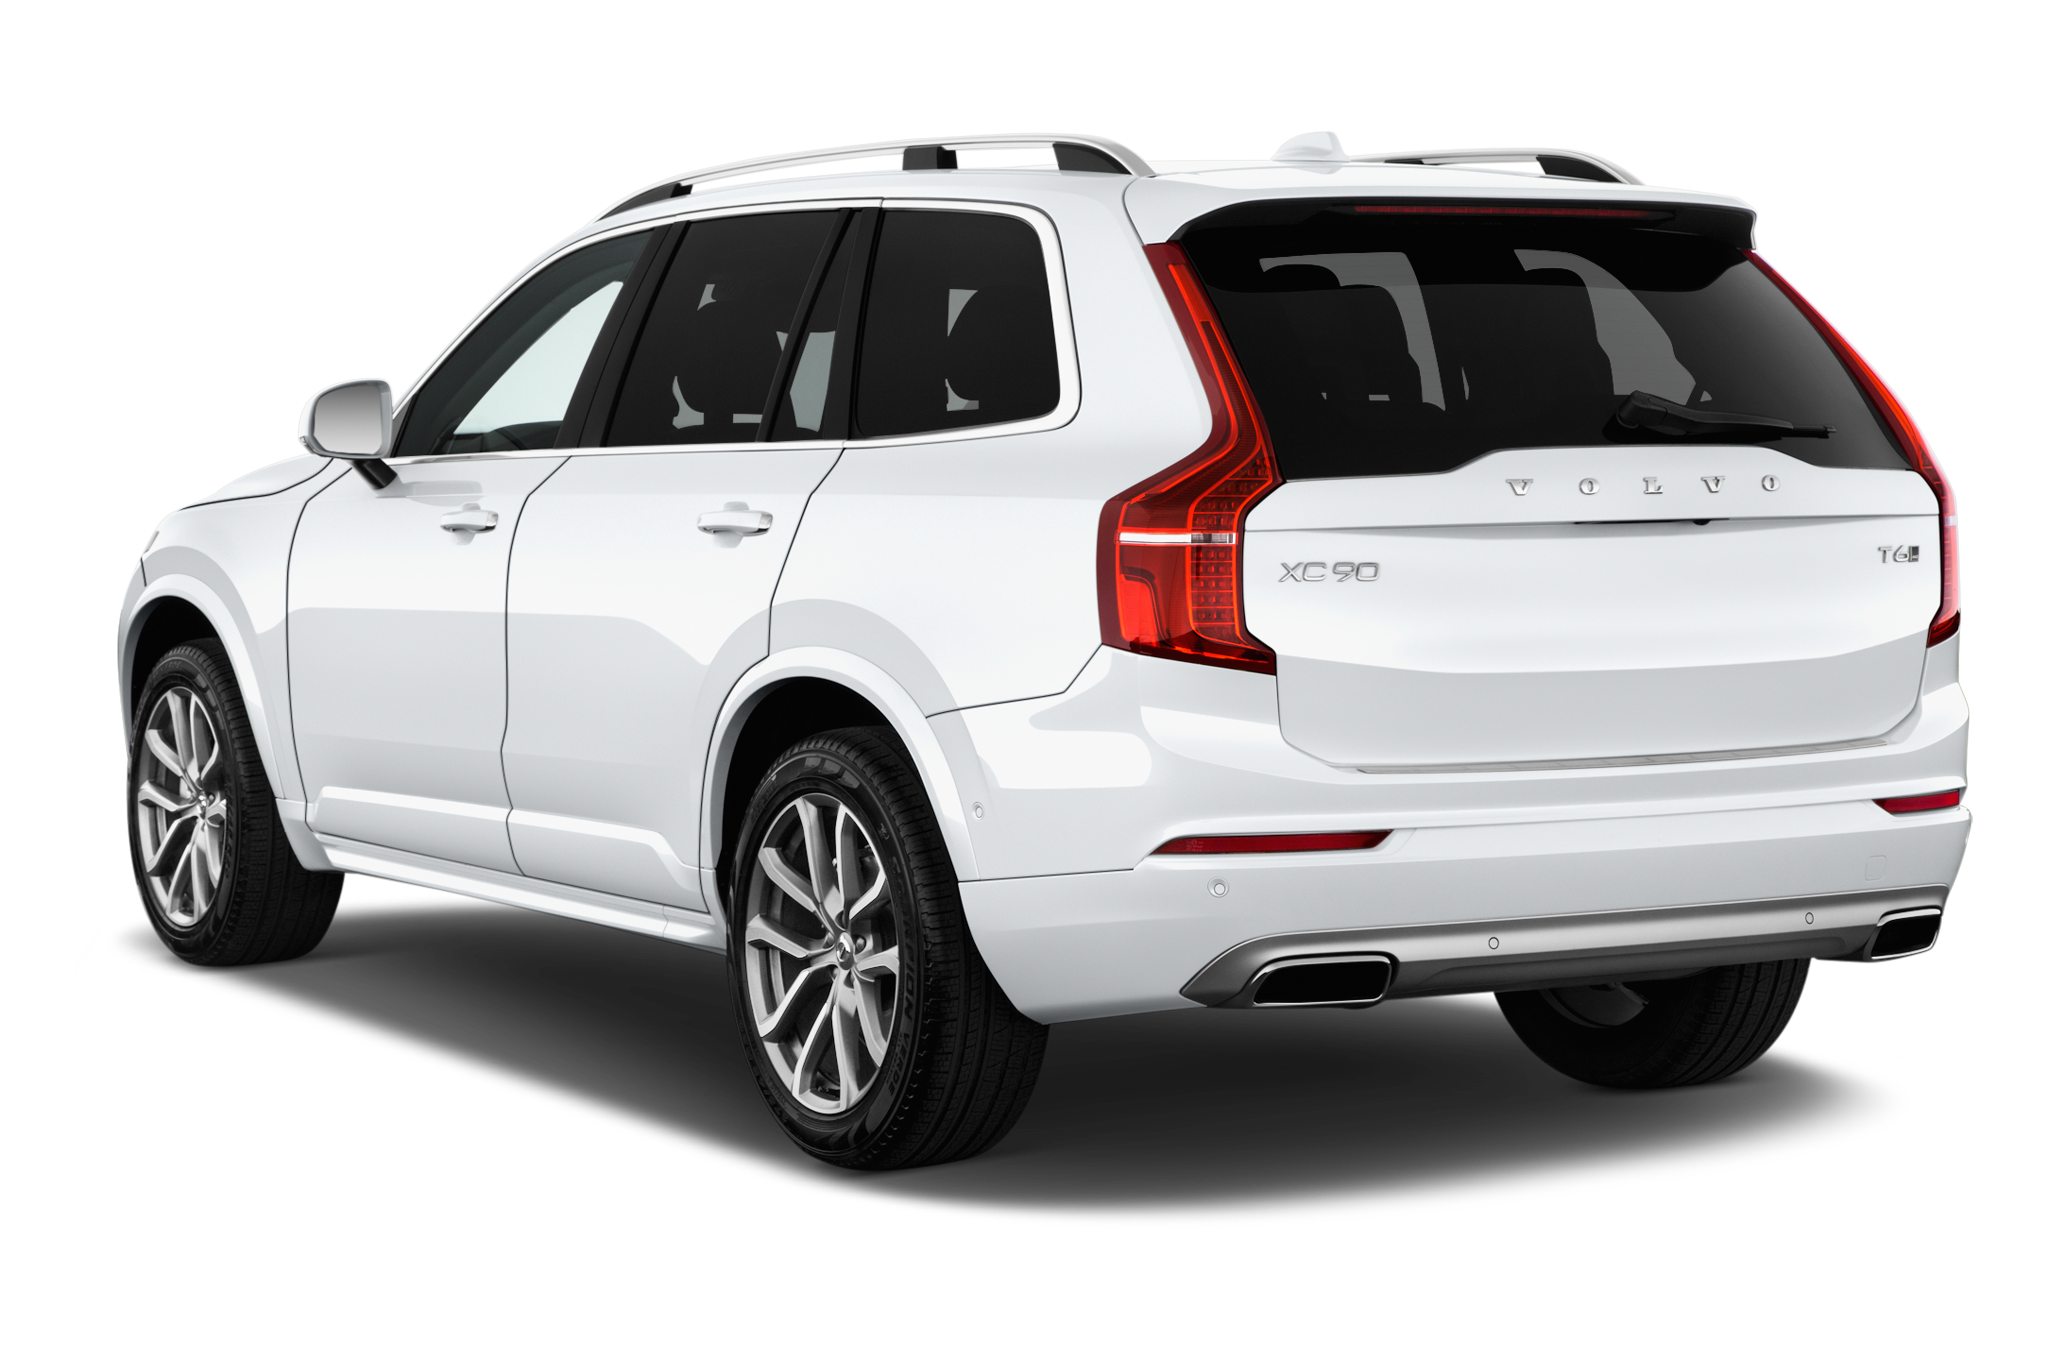 twin all spills interior in volvo suv pricing plug open details new the on released engine hybrid price order books